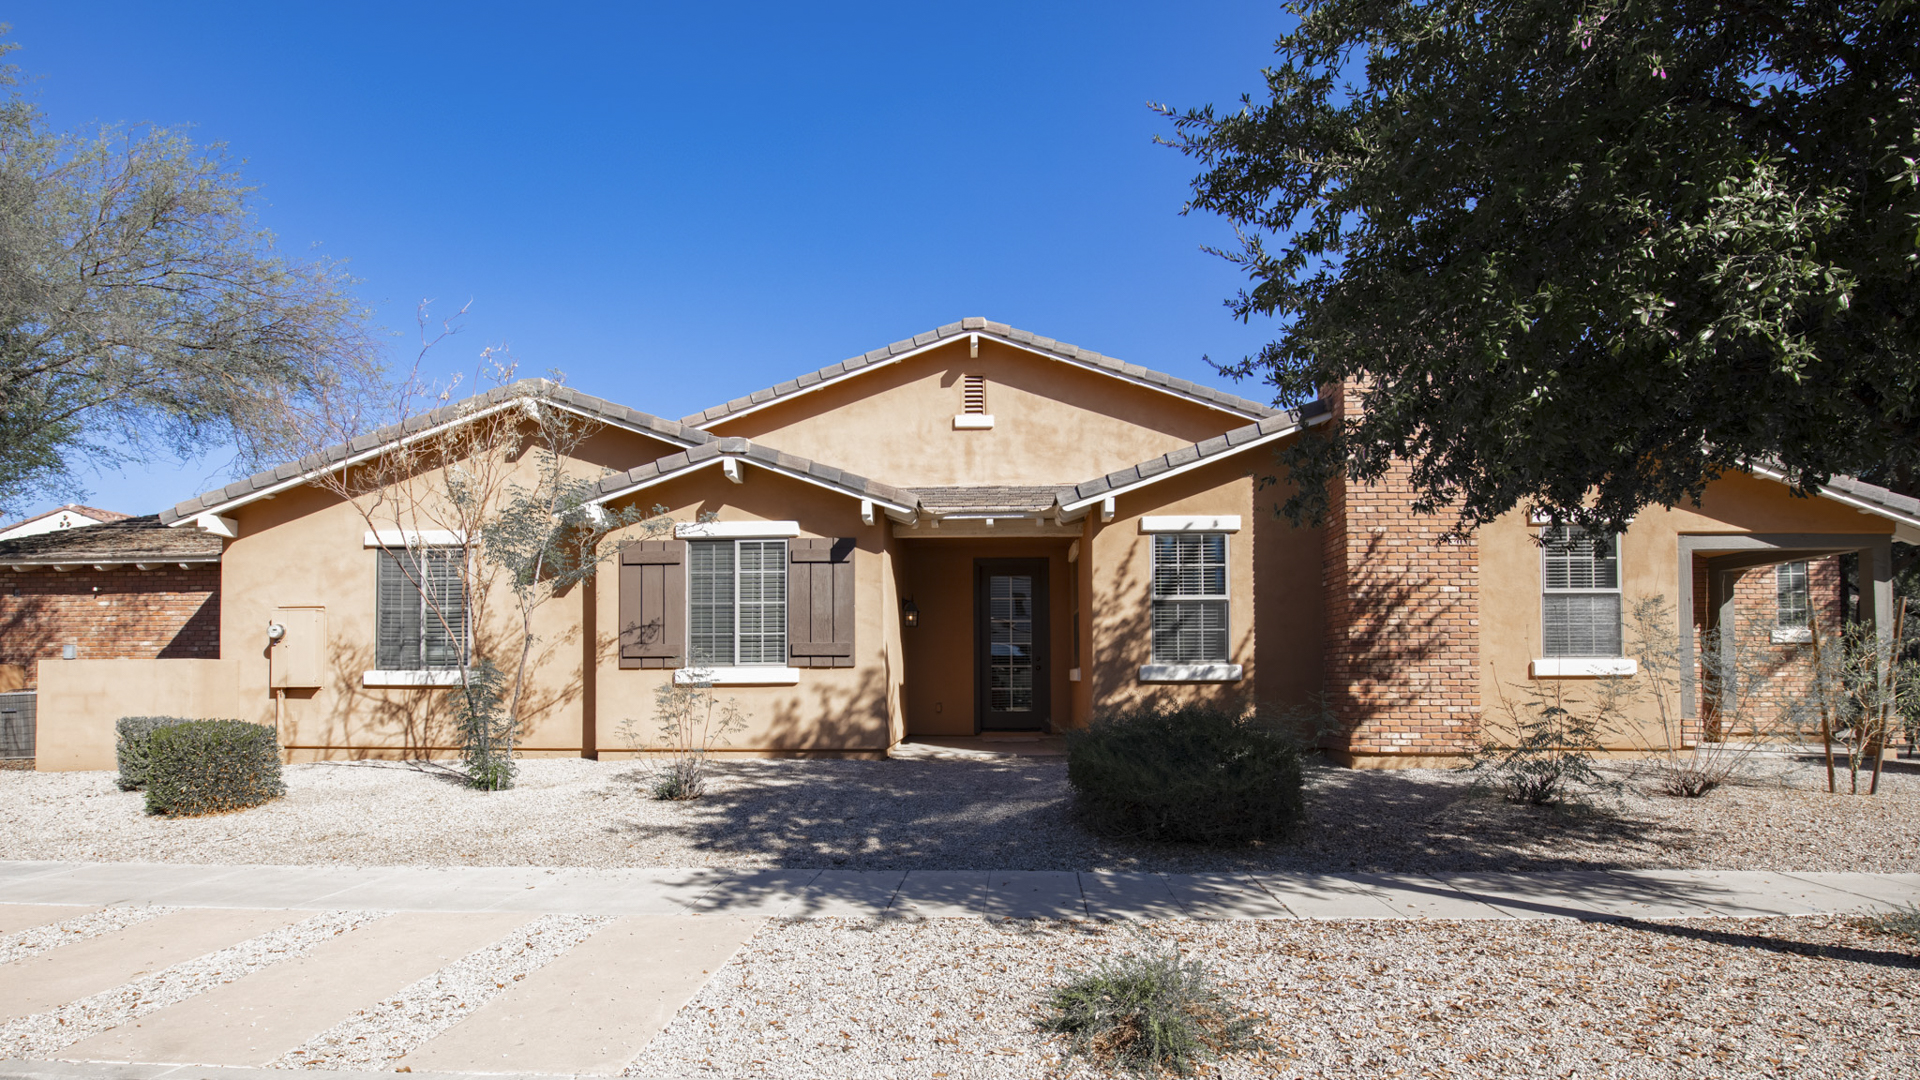 NEW LISTING - 13421 N 151st Drive, Surprise, AZ 85379 - Marley Park | The Amy Jones Group